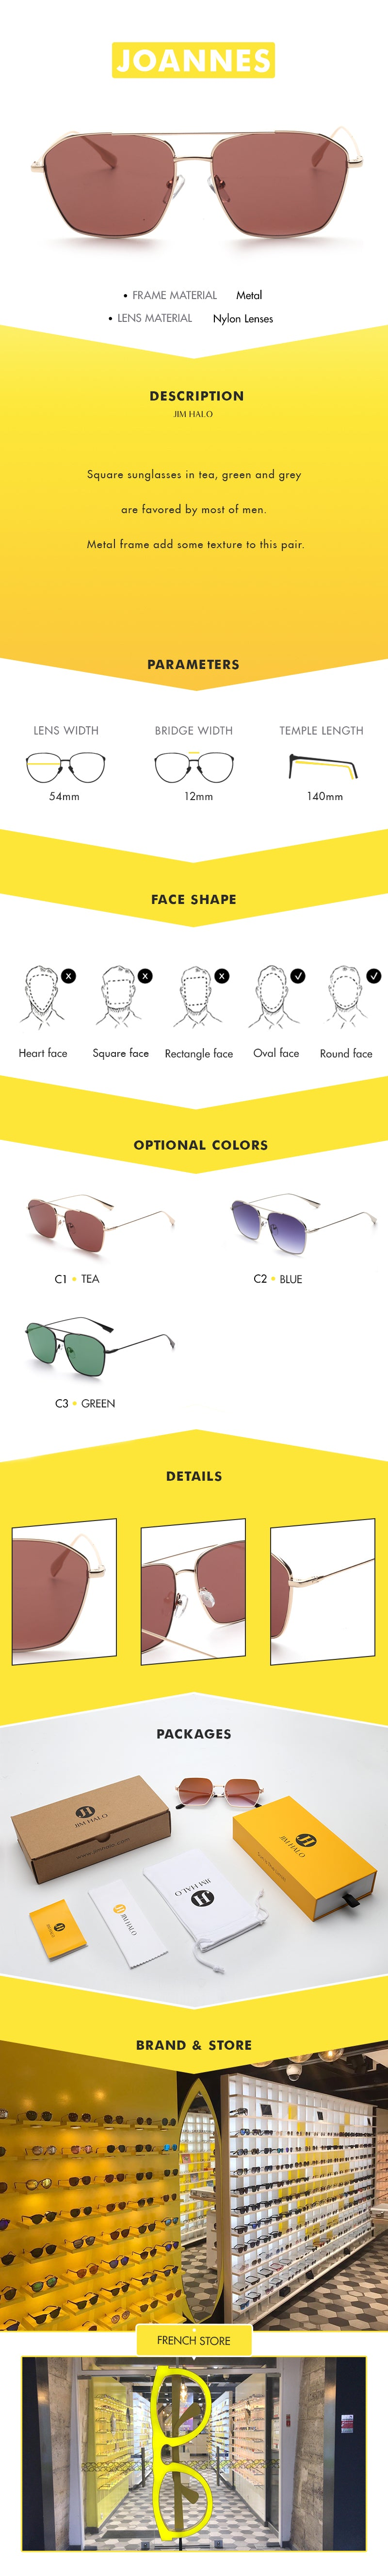 Square sunglasses in tea, green and grey are favored by most of men. Metal frame add some texture to this pair.